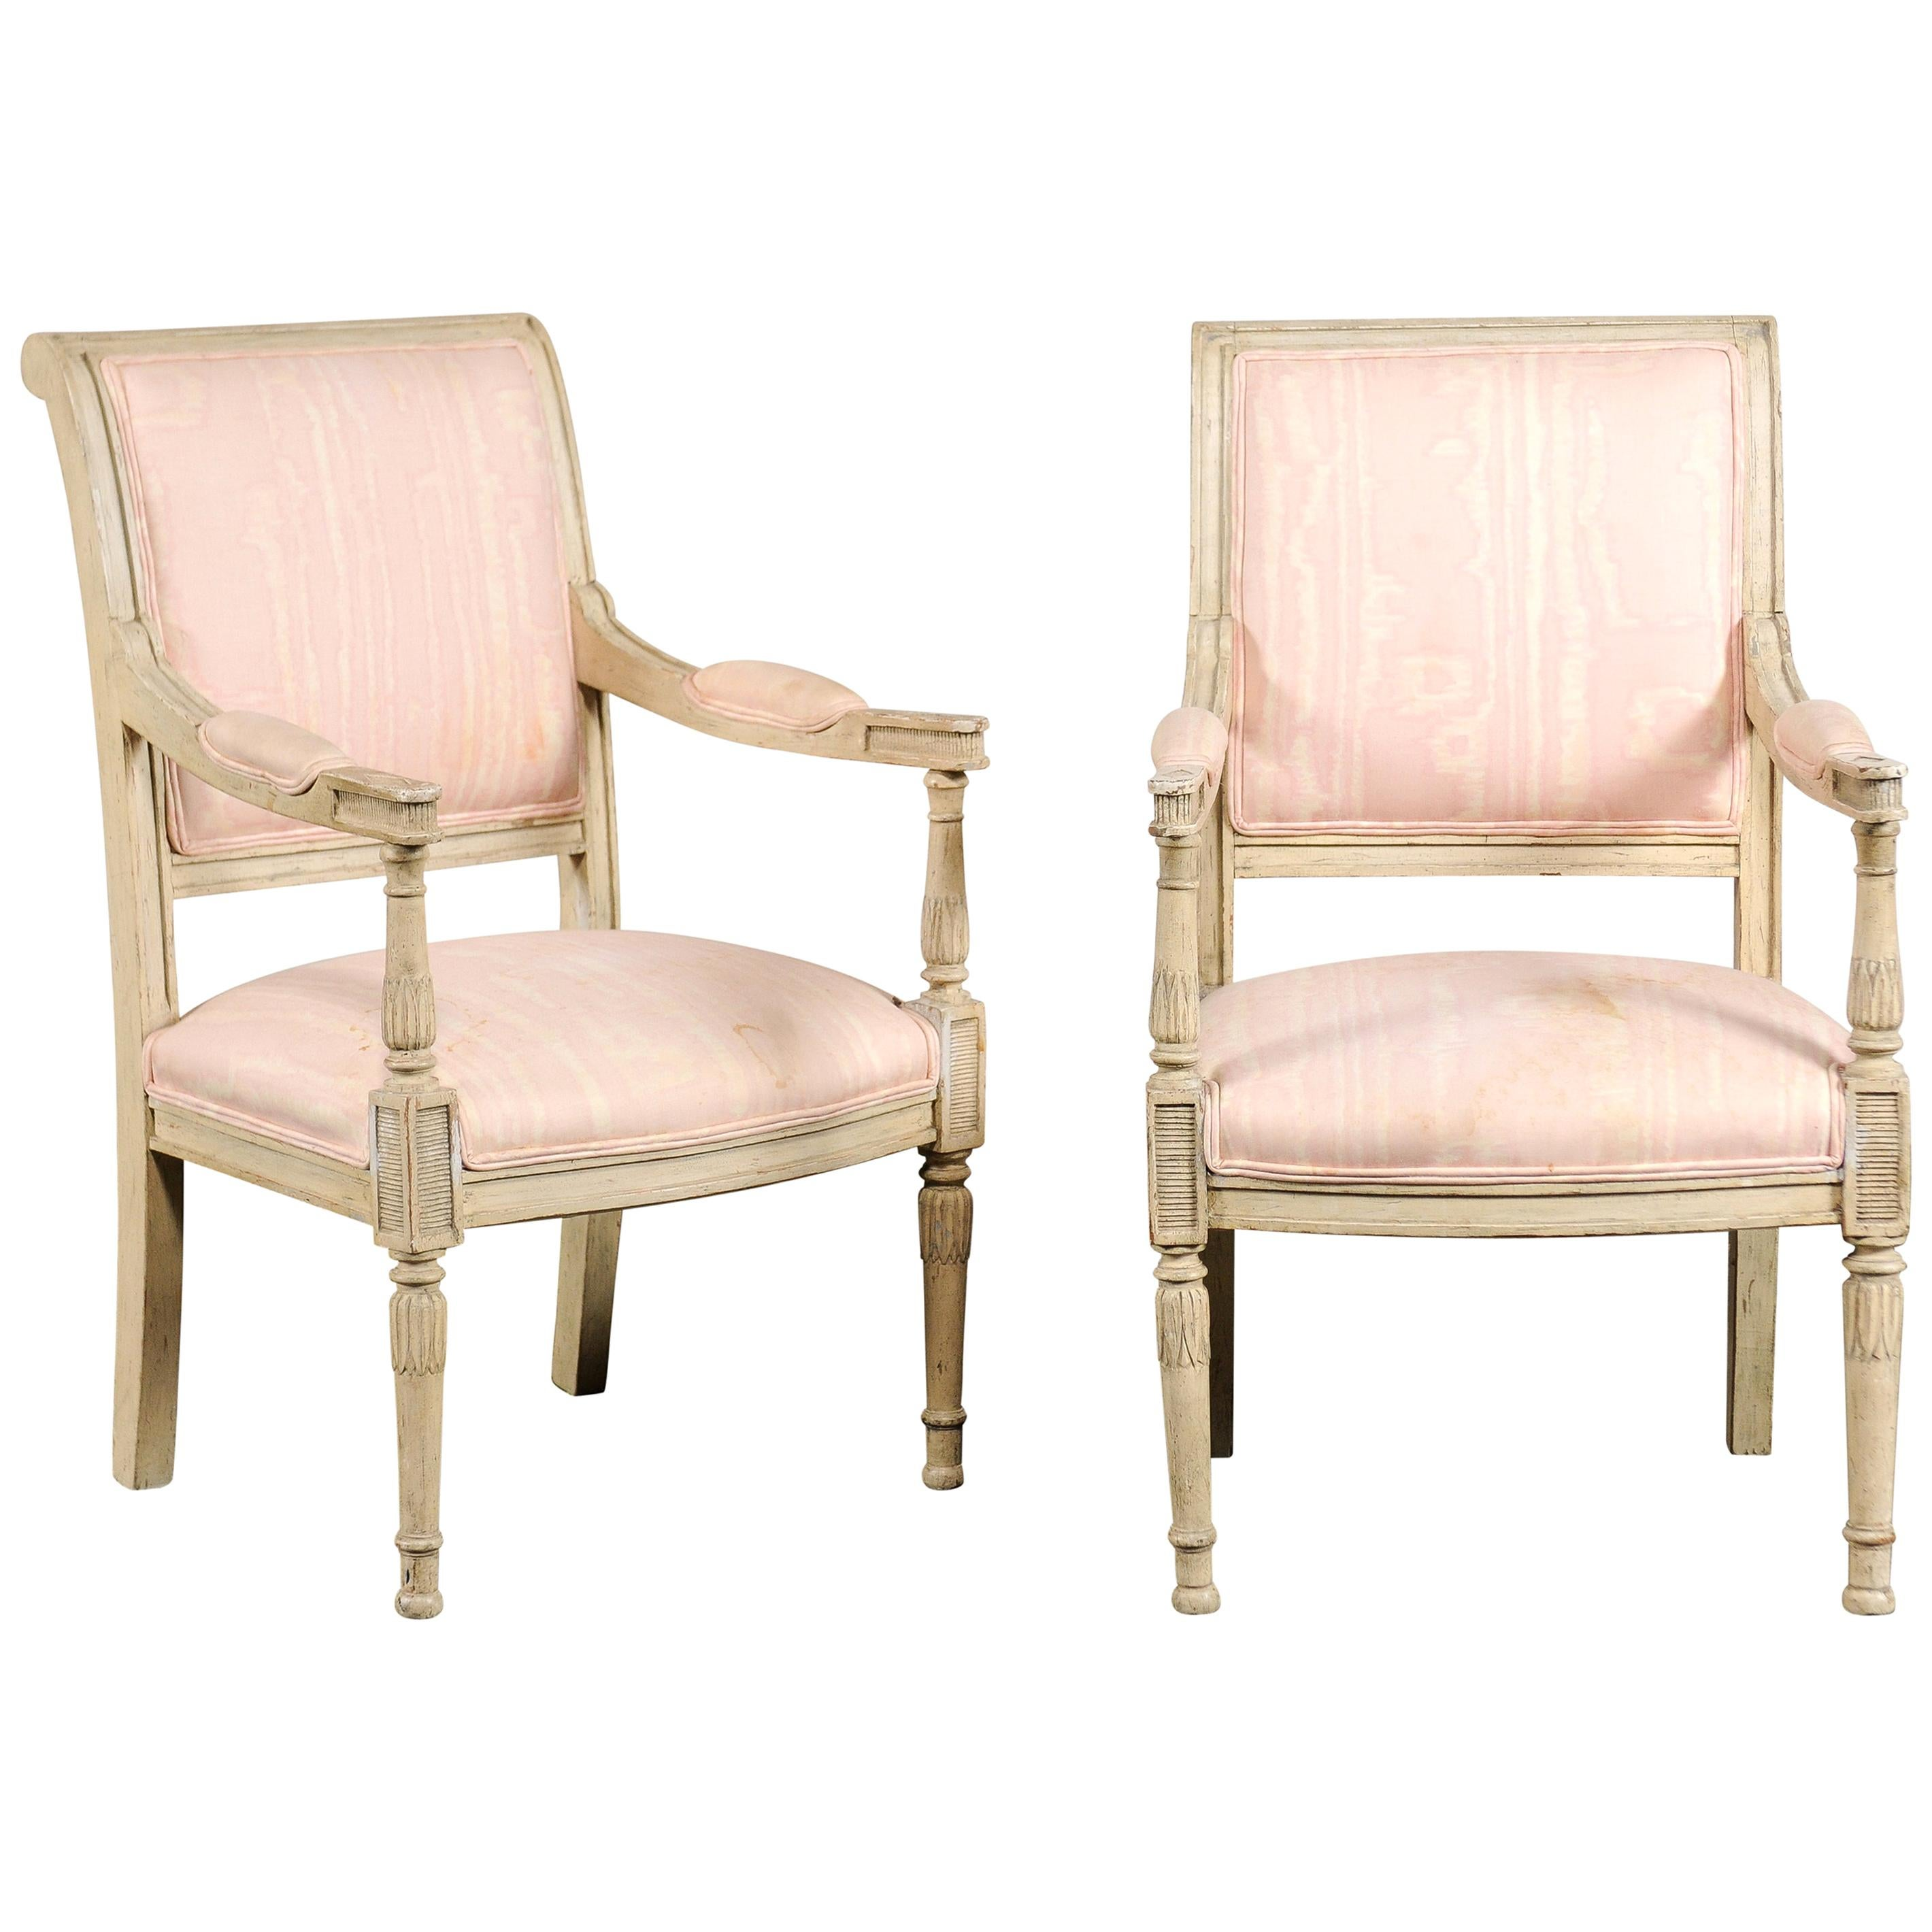 Pair of 19th-Early 20th Century French Child's Chairs, Painted Directoire Style